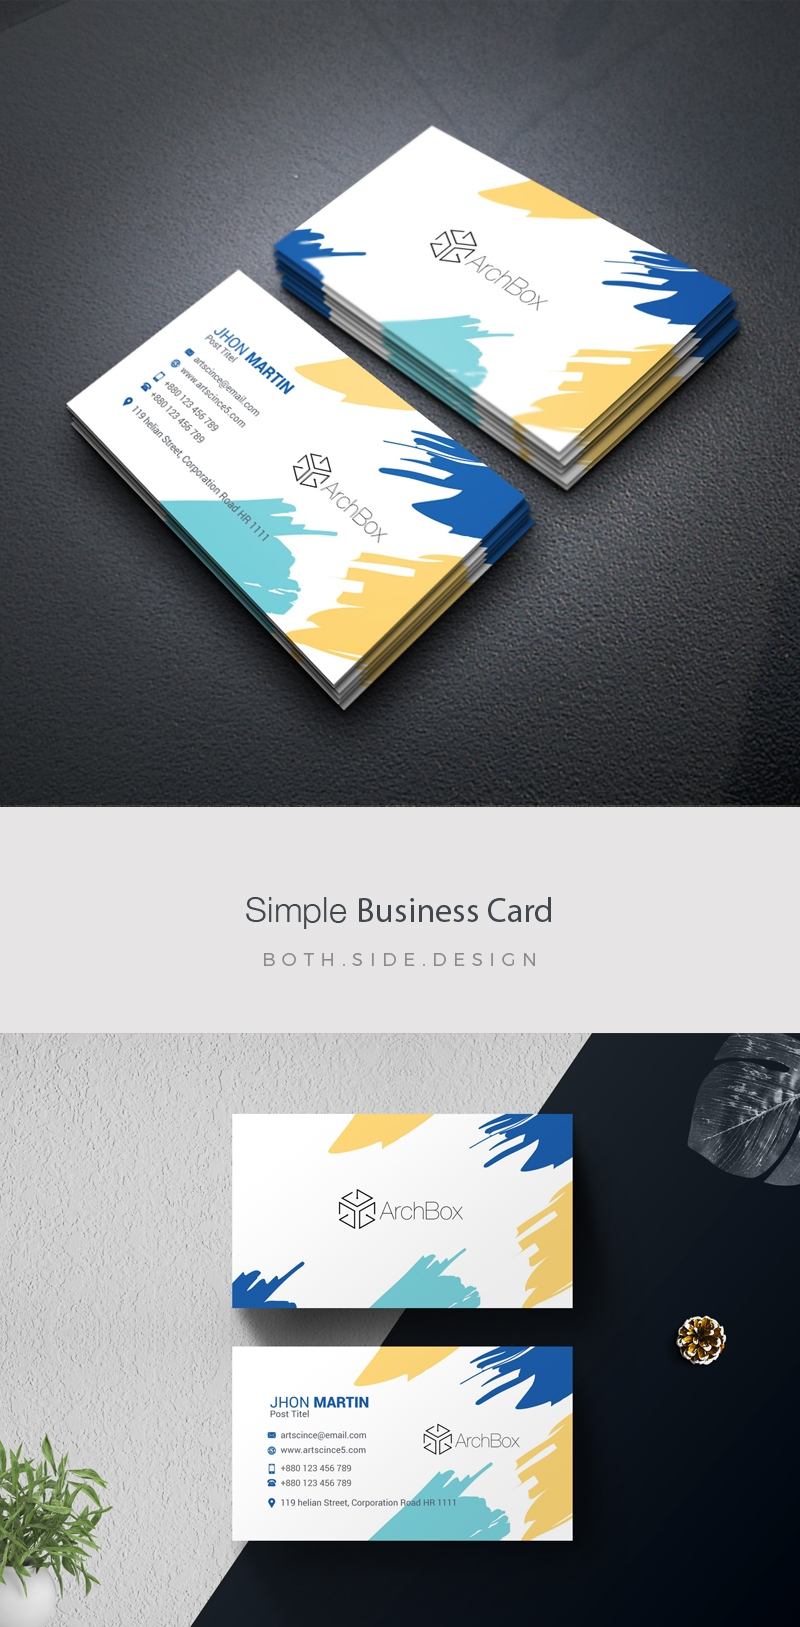 Simple BusinessCard With Brush Style